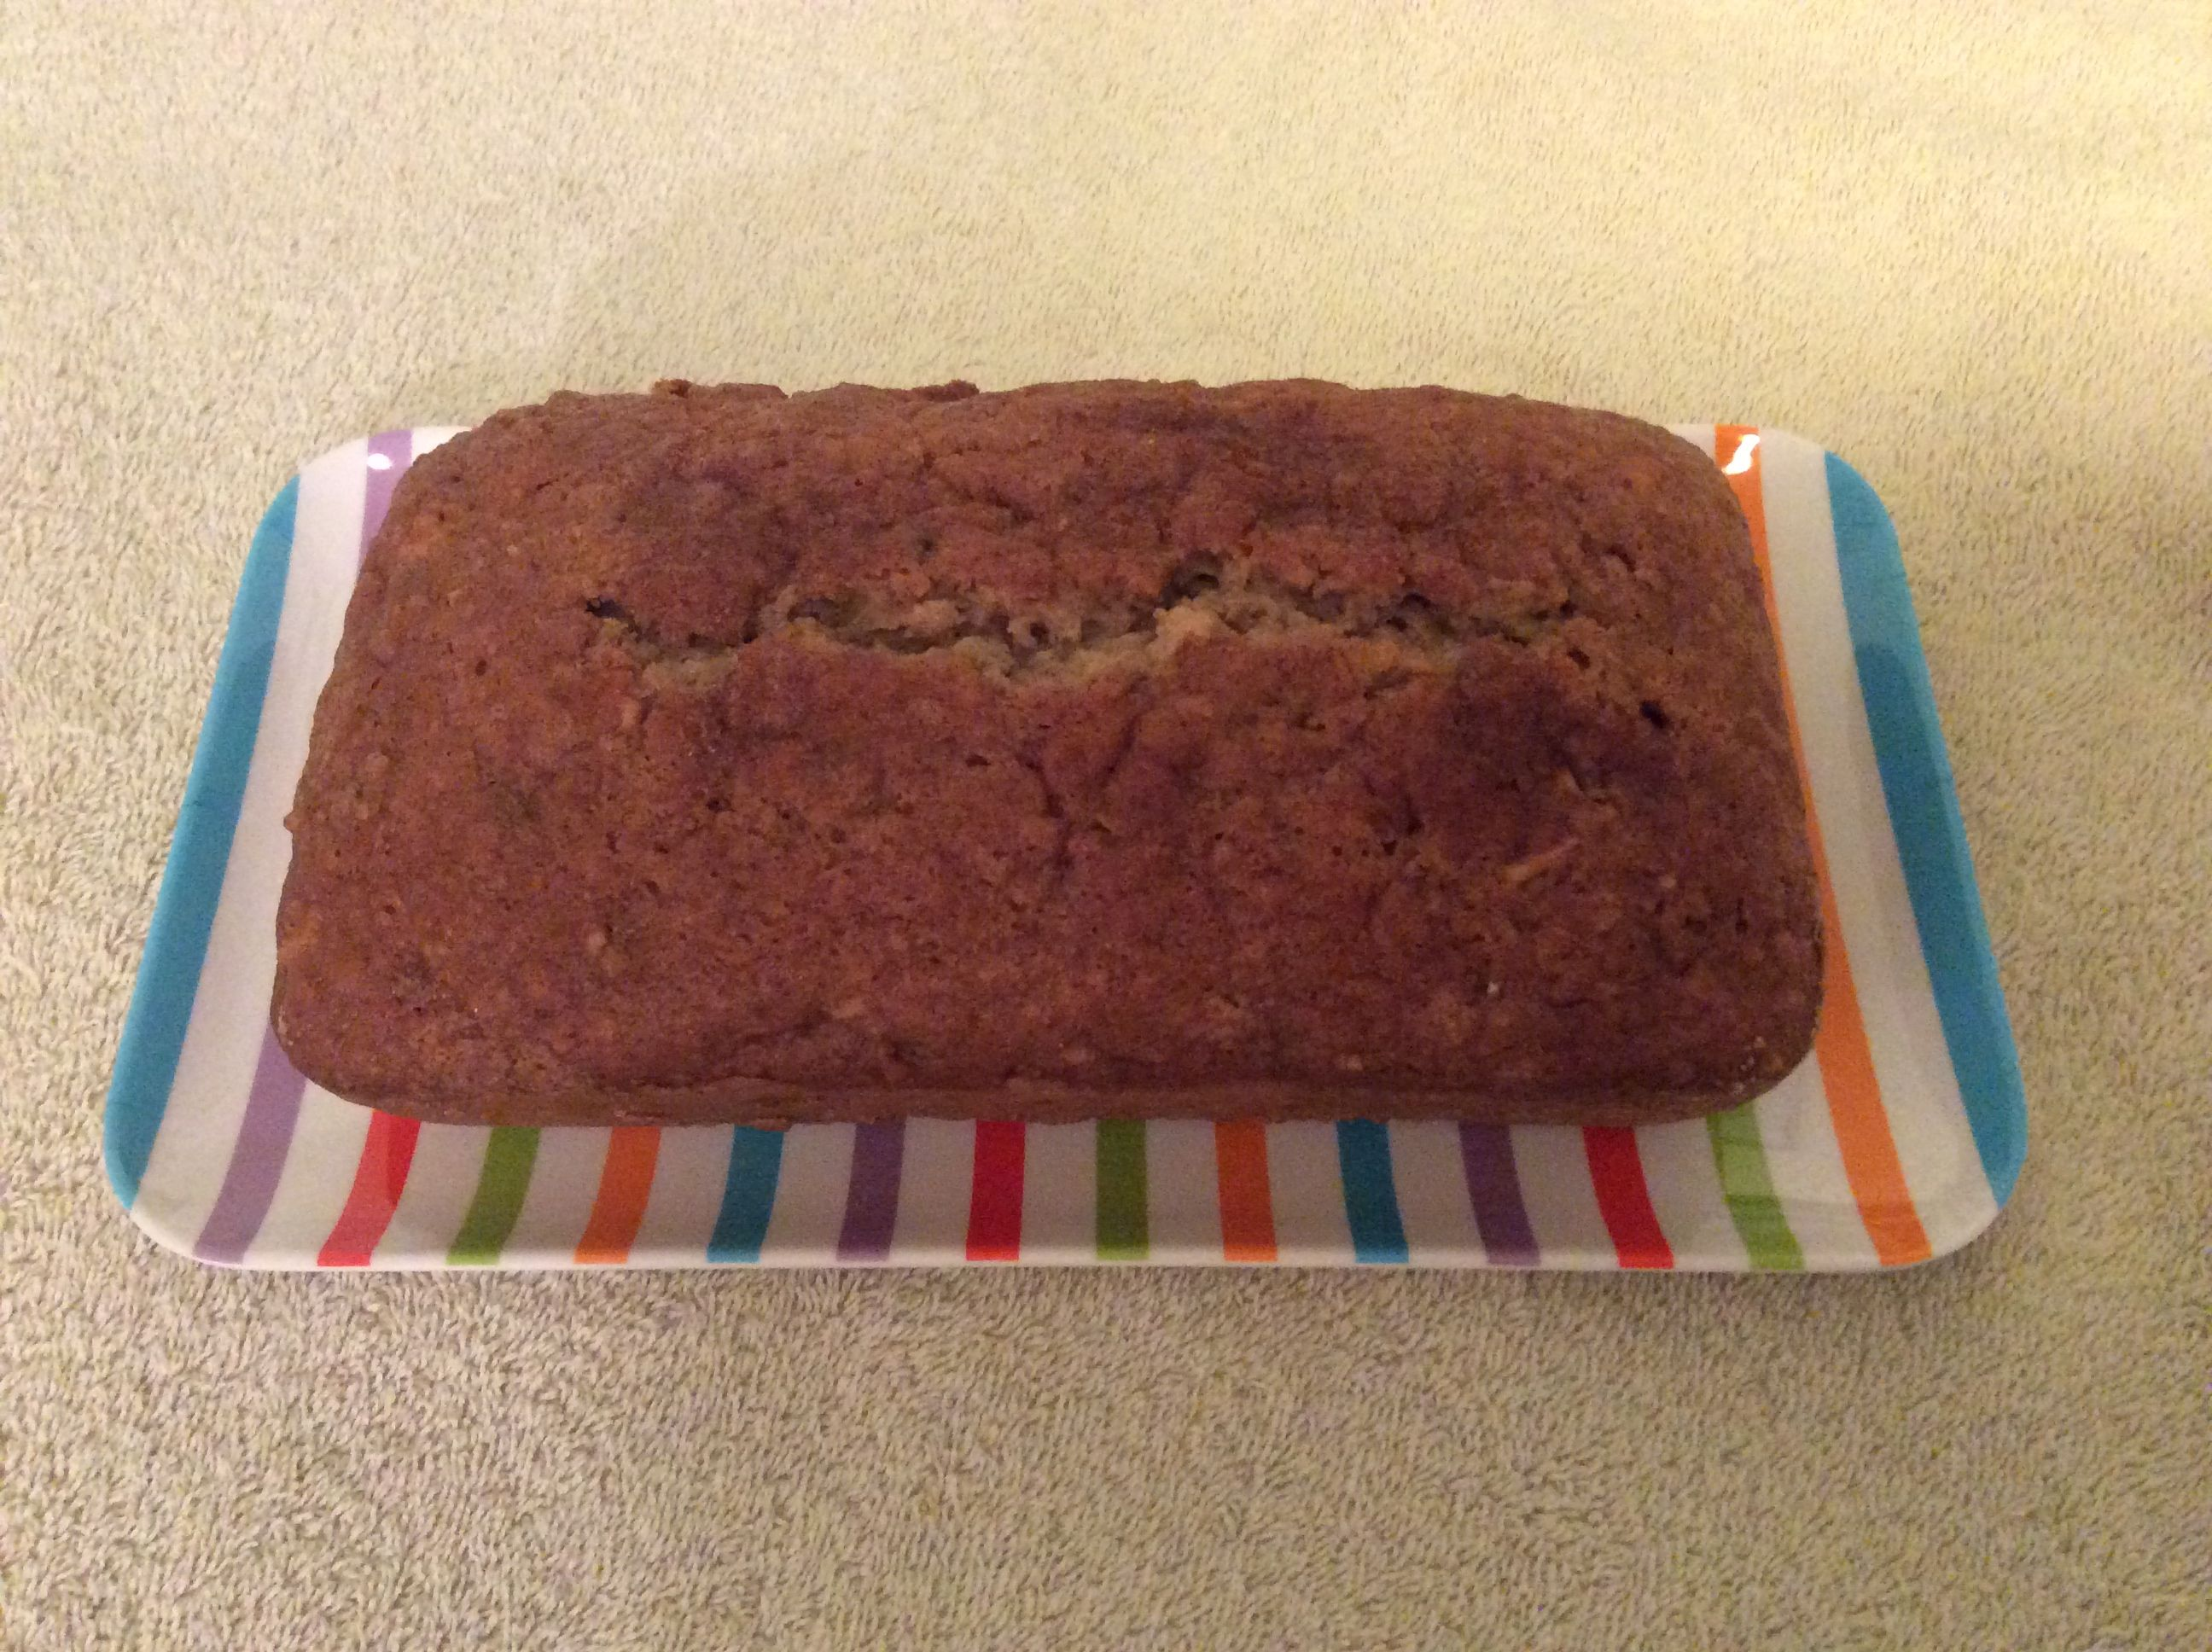 Instant apple oatmeal packets make this Amish Friendship Bread recipe fast, easy and nutritious.